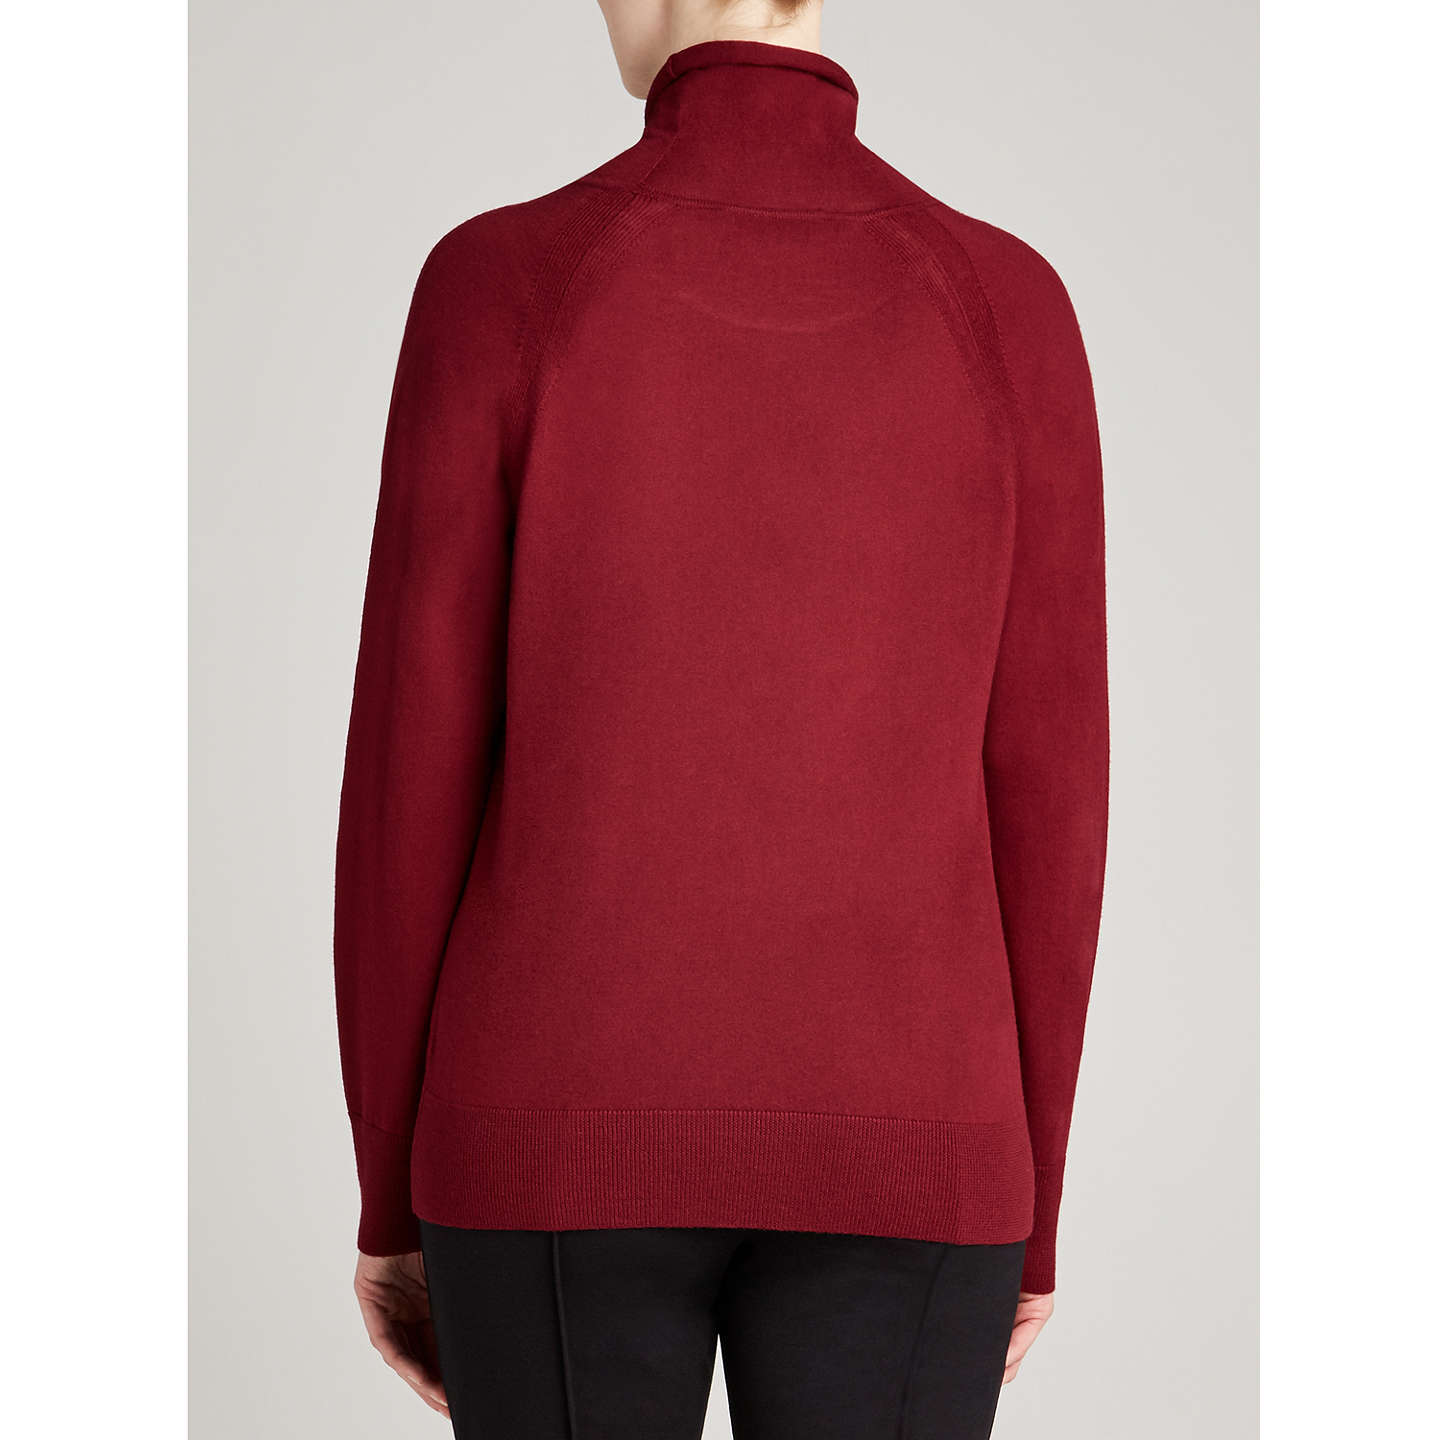 BuyWinser London Merino Wool Roll Neck, Rich Burgundy, XS Online at johnlewis.com